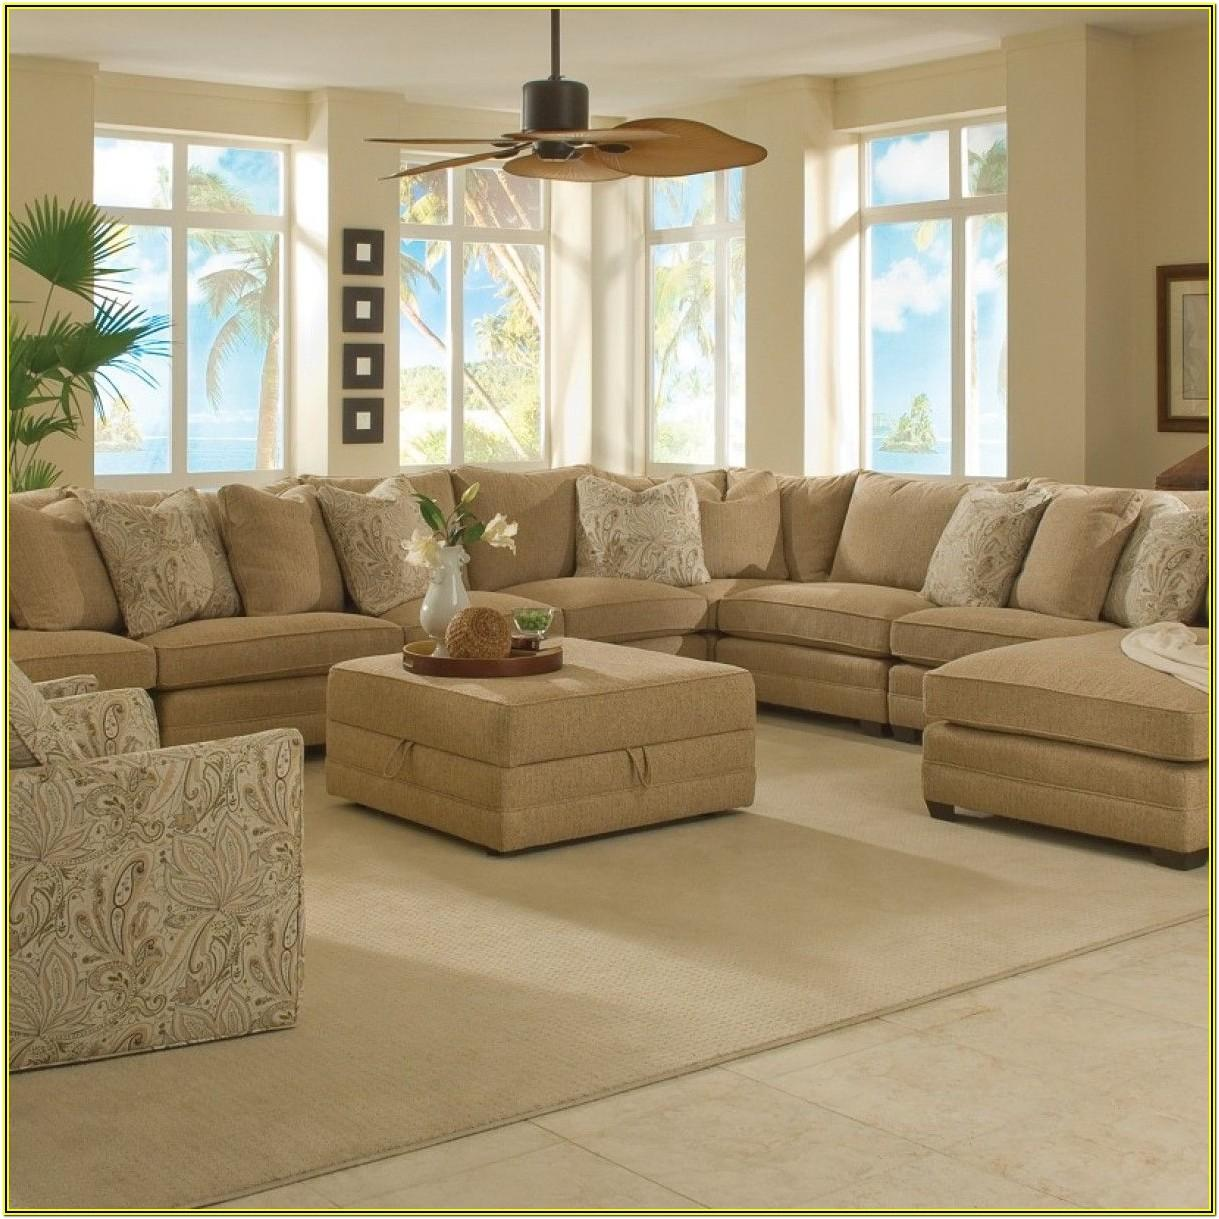 Living Room Ideas With Recliner Sofa